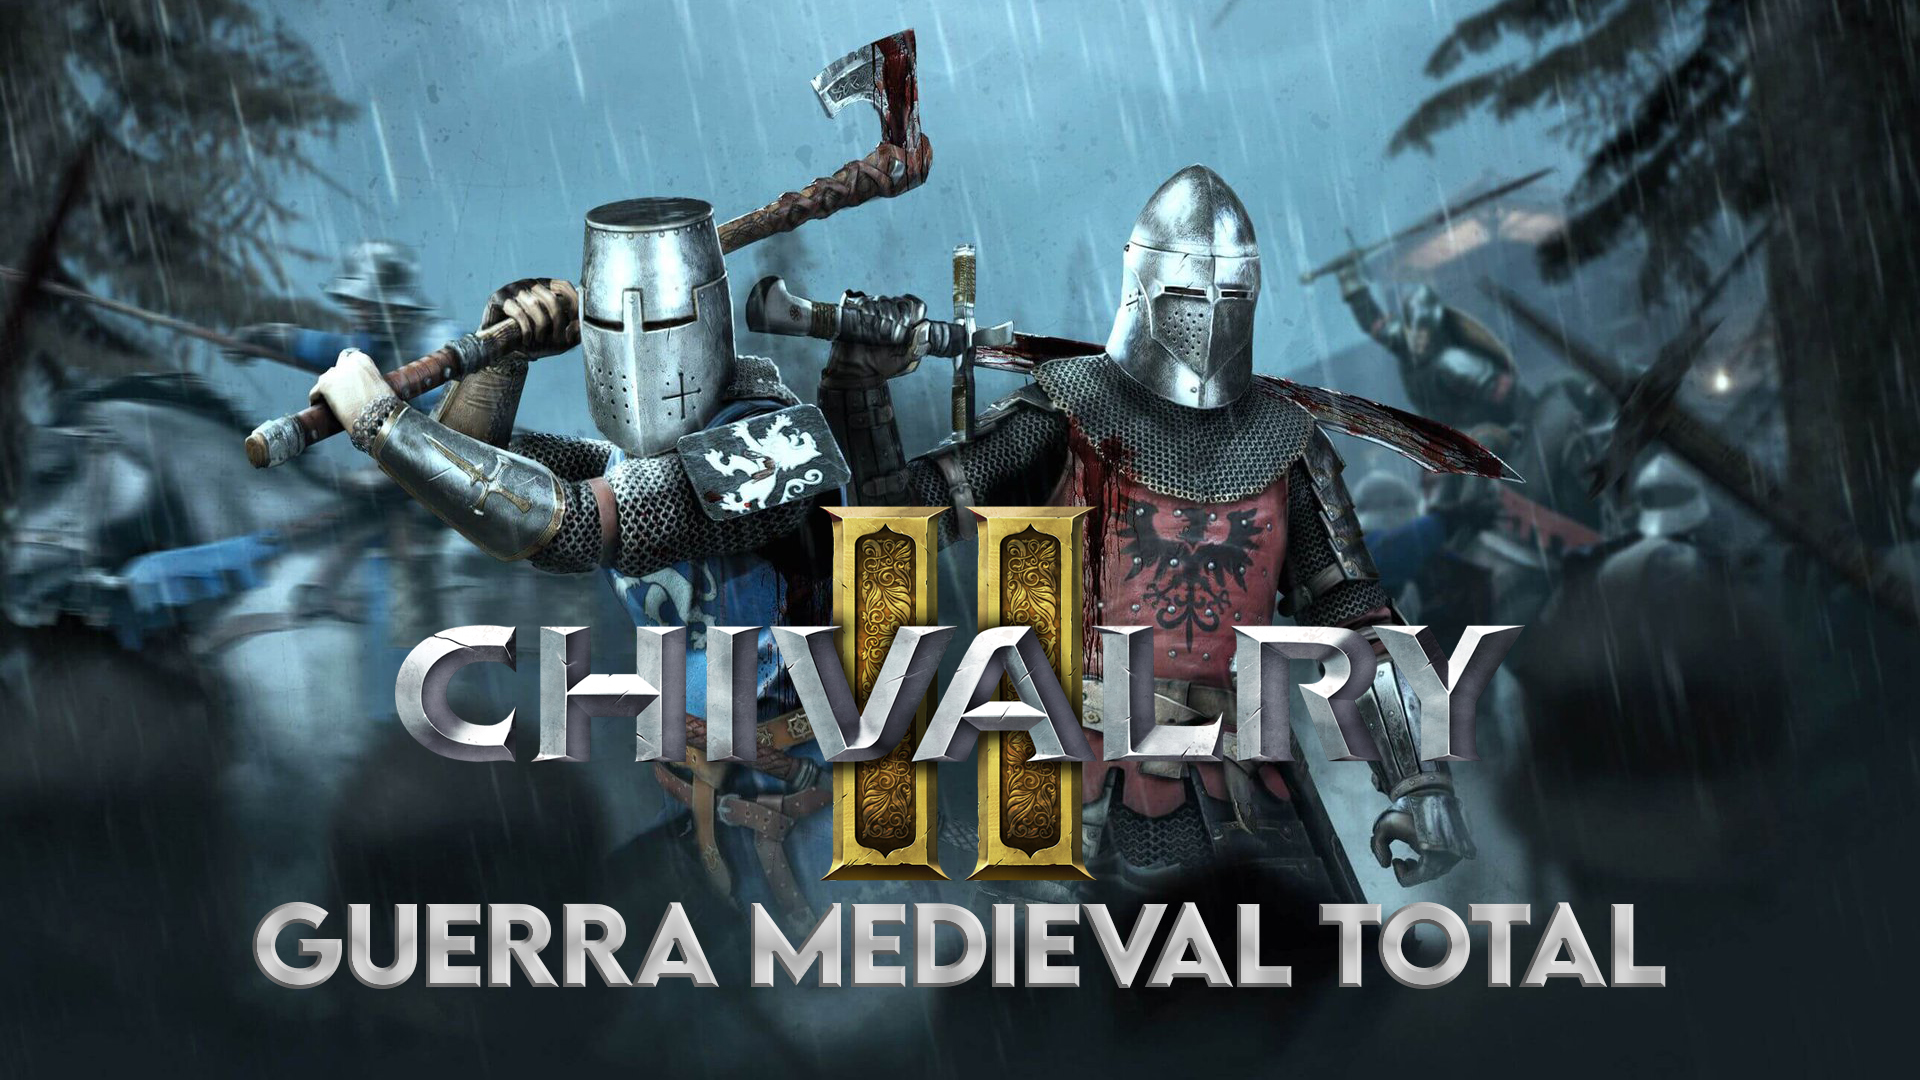 Chivalry 2 – Guerra Medieval Total